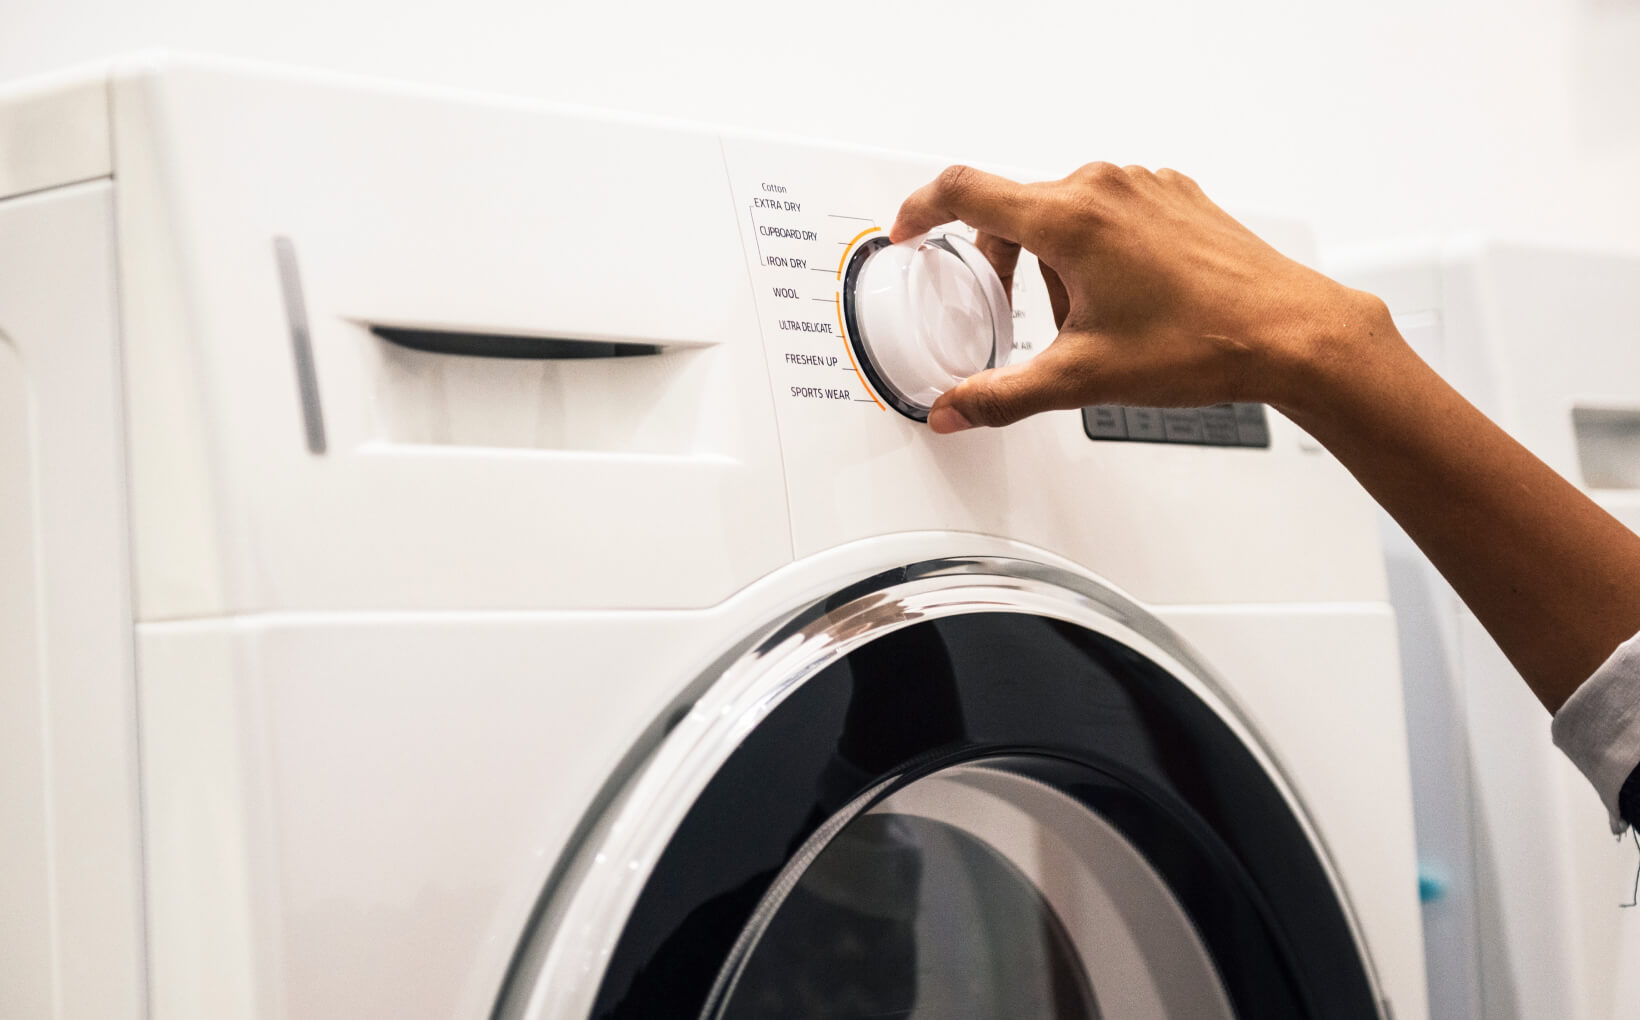 Hand turning the knob on a washing machine